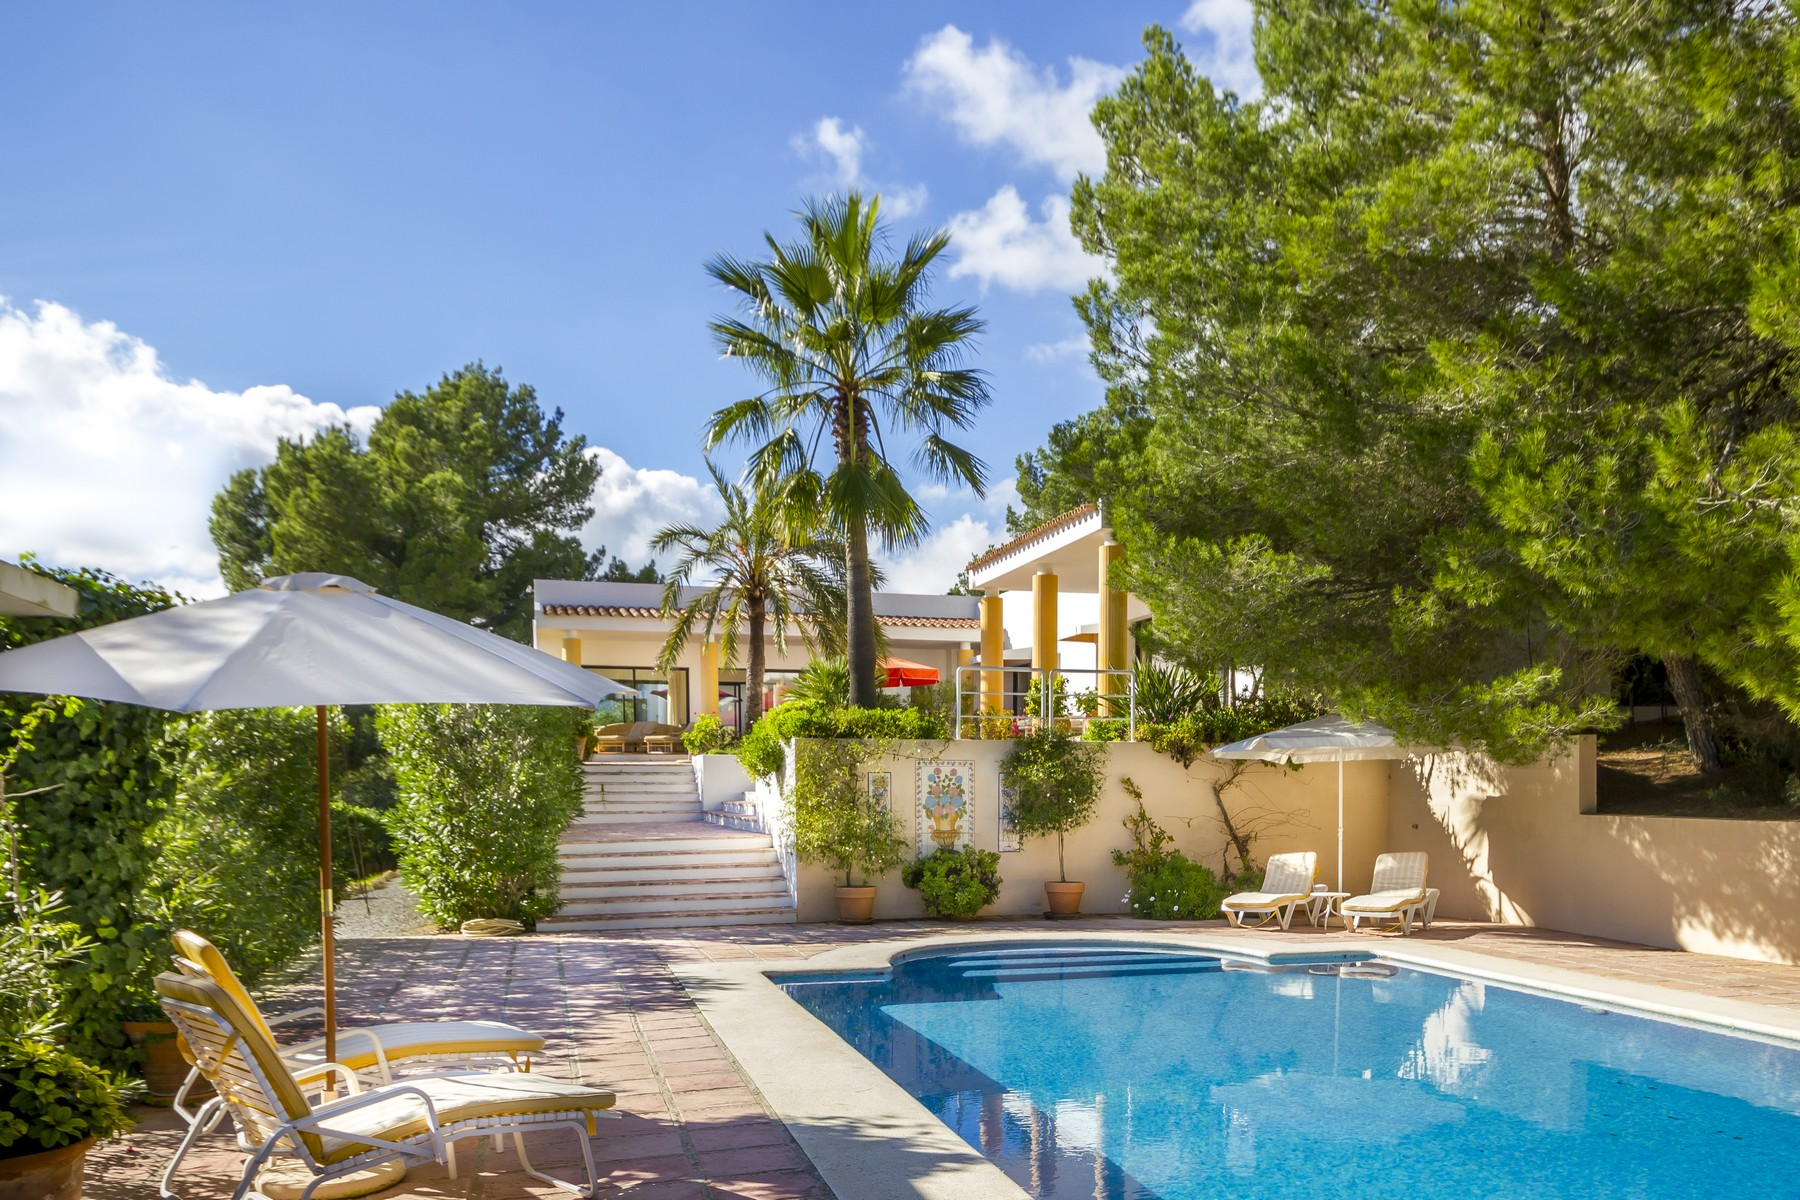 Maison unifamiliale pour l Vente à Spacious Villa With Guest House And Great Views San Jose, Ibiza, 07830 Espagne